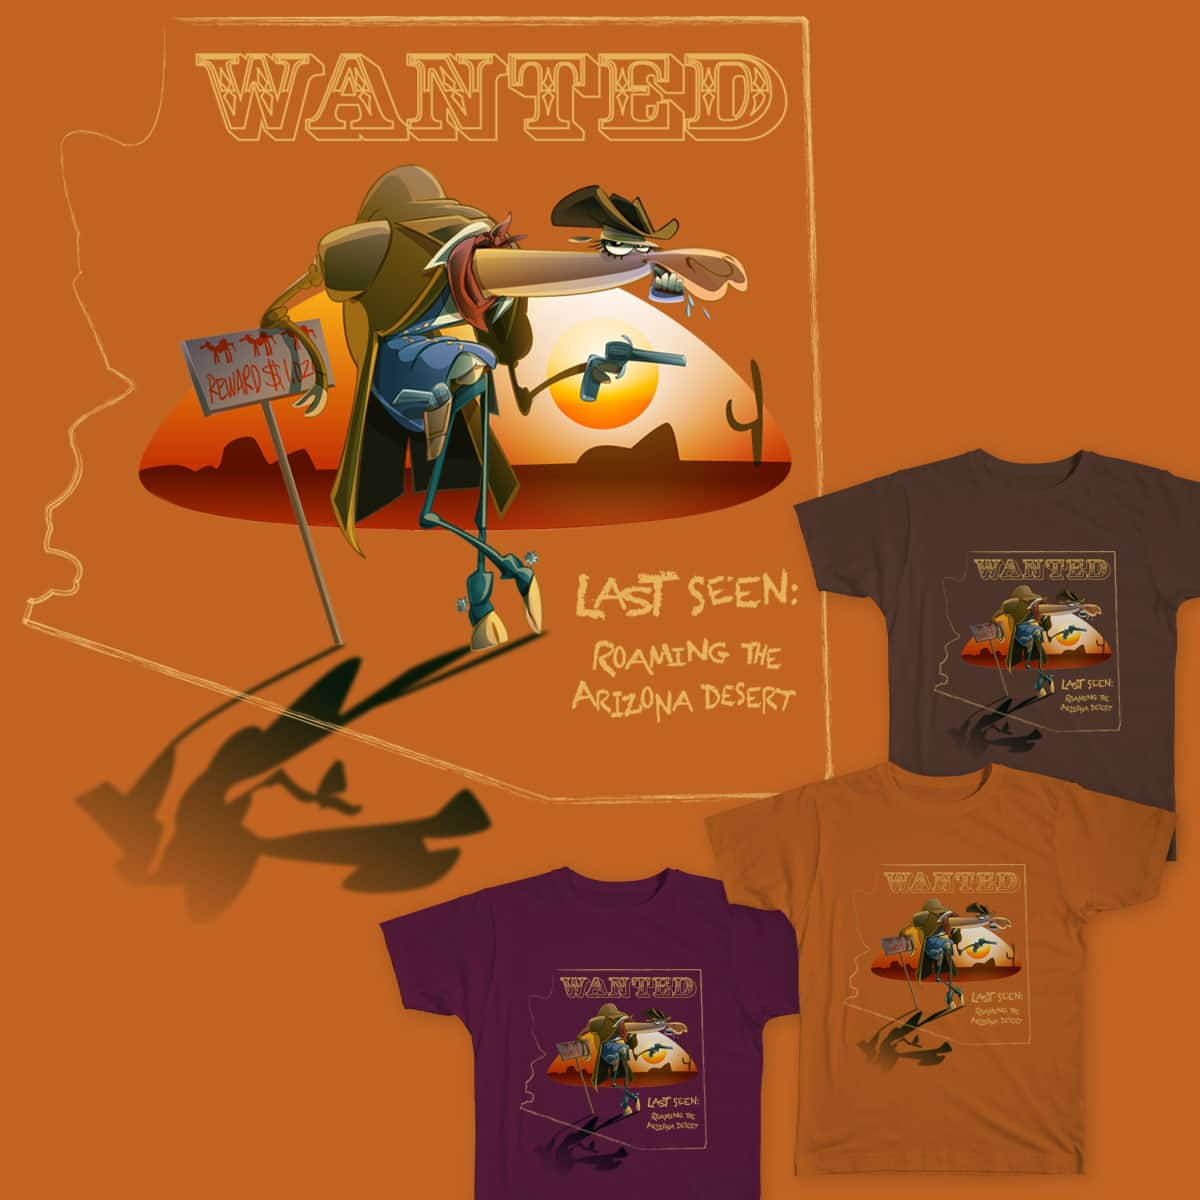 Wanted: Wild Camel by Kiracatures on Threadless